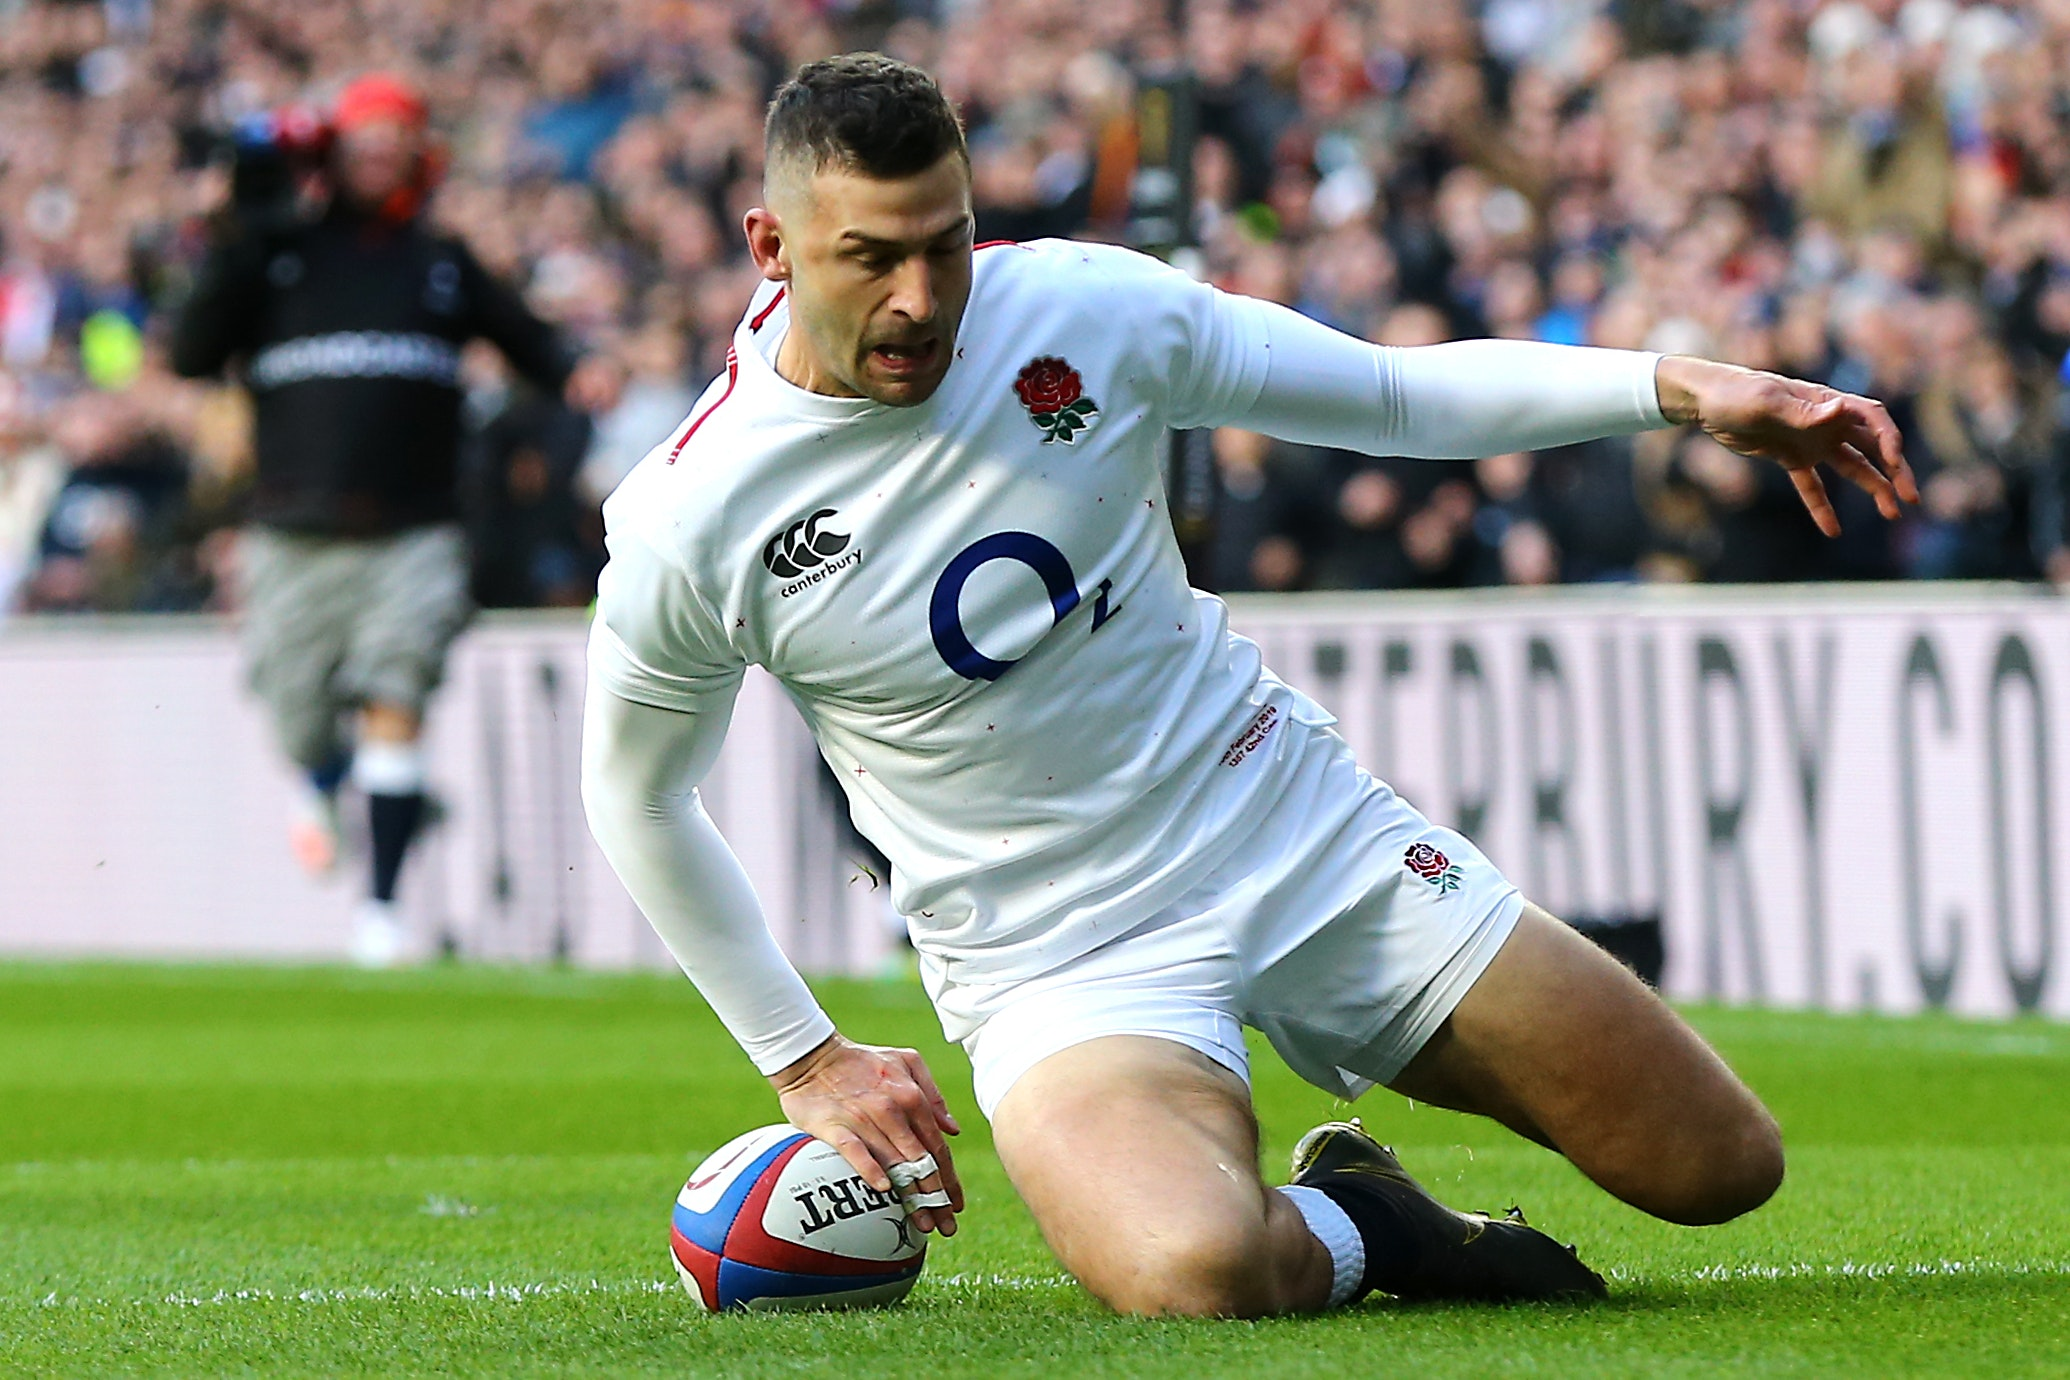 Jonny May scores England's first try of the game